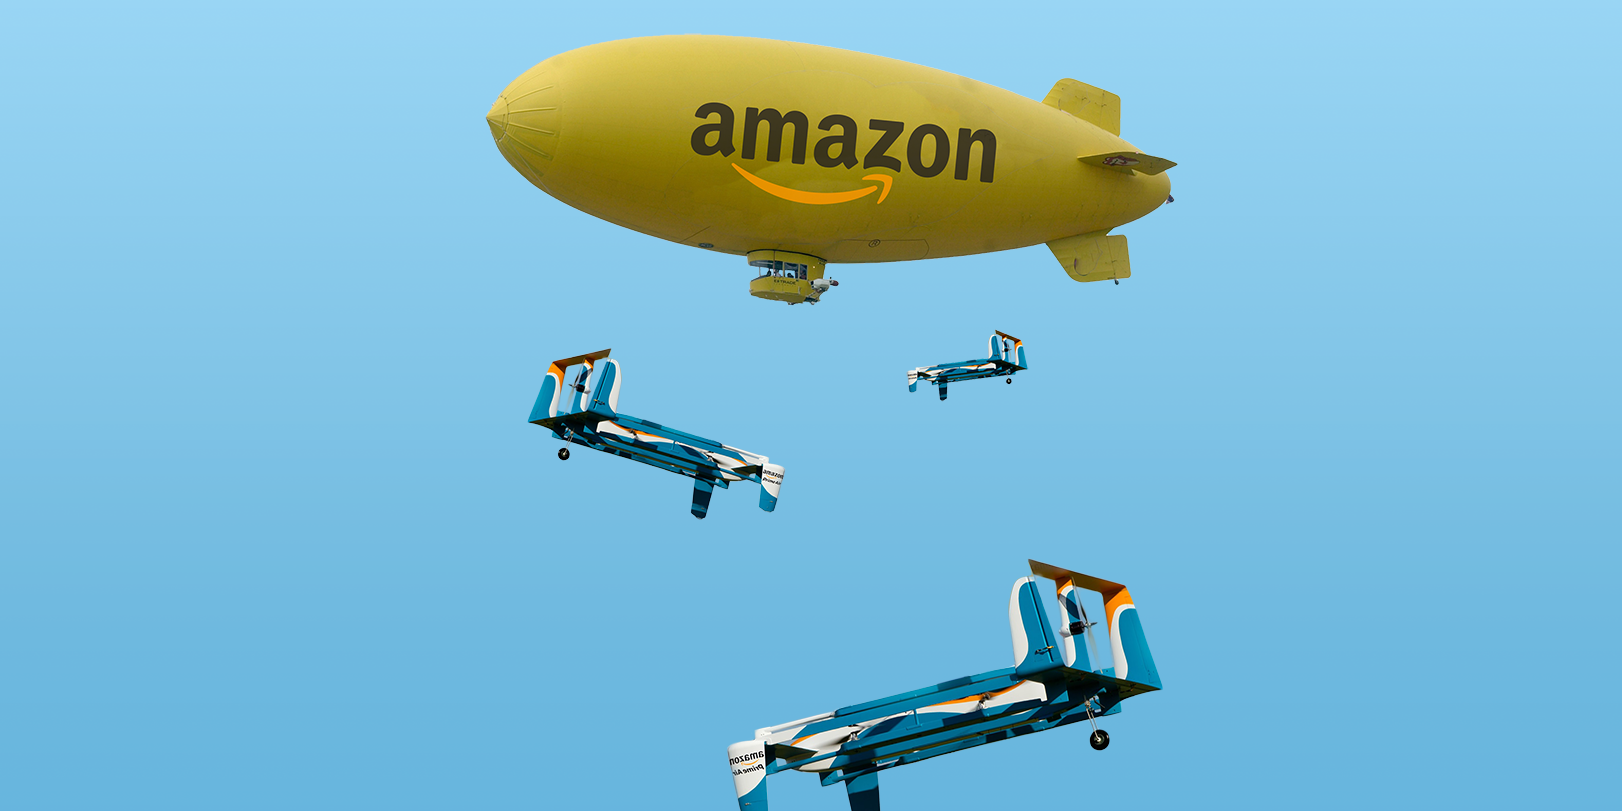 Amazon has a plan for floating blimp warehouses